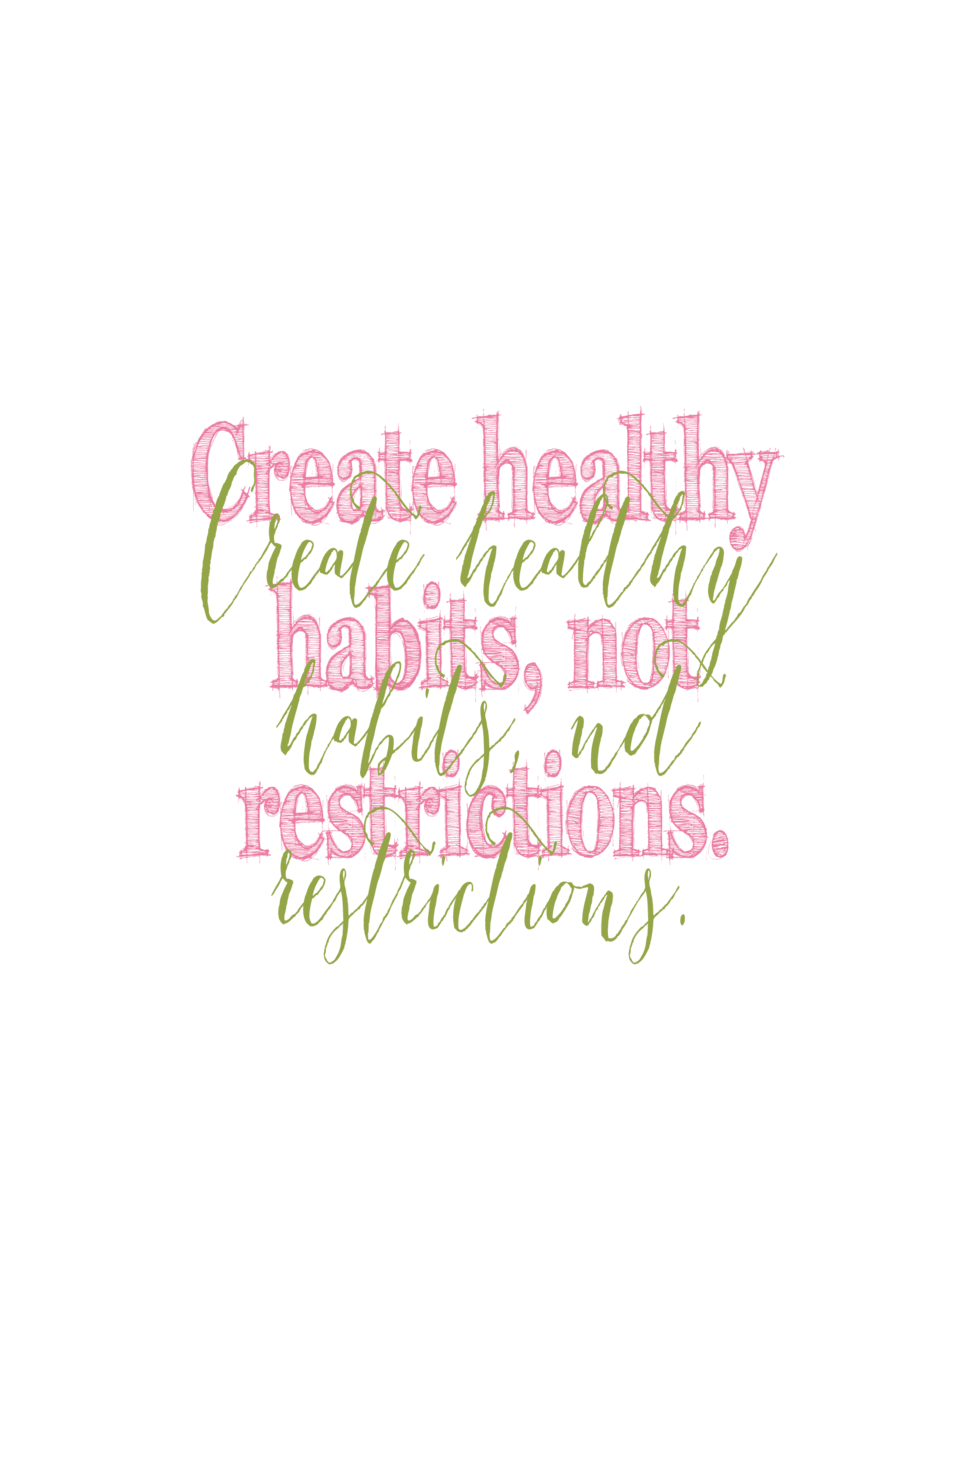 Createhealthy healthy Create habits, not habits, not restrictions. restrictions.